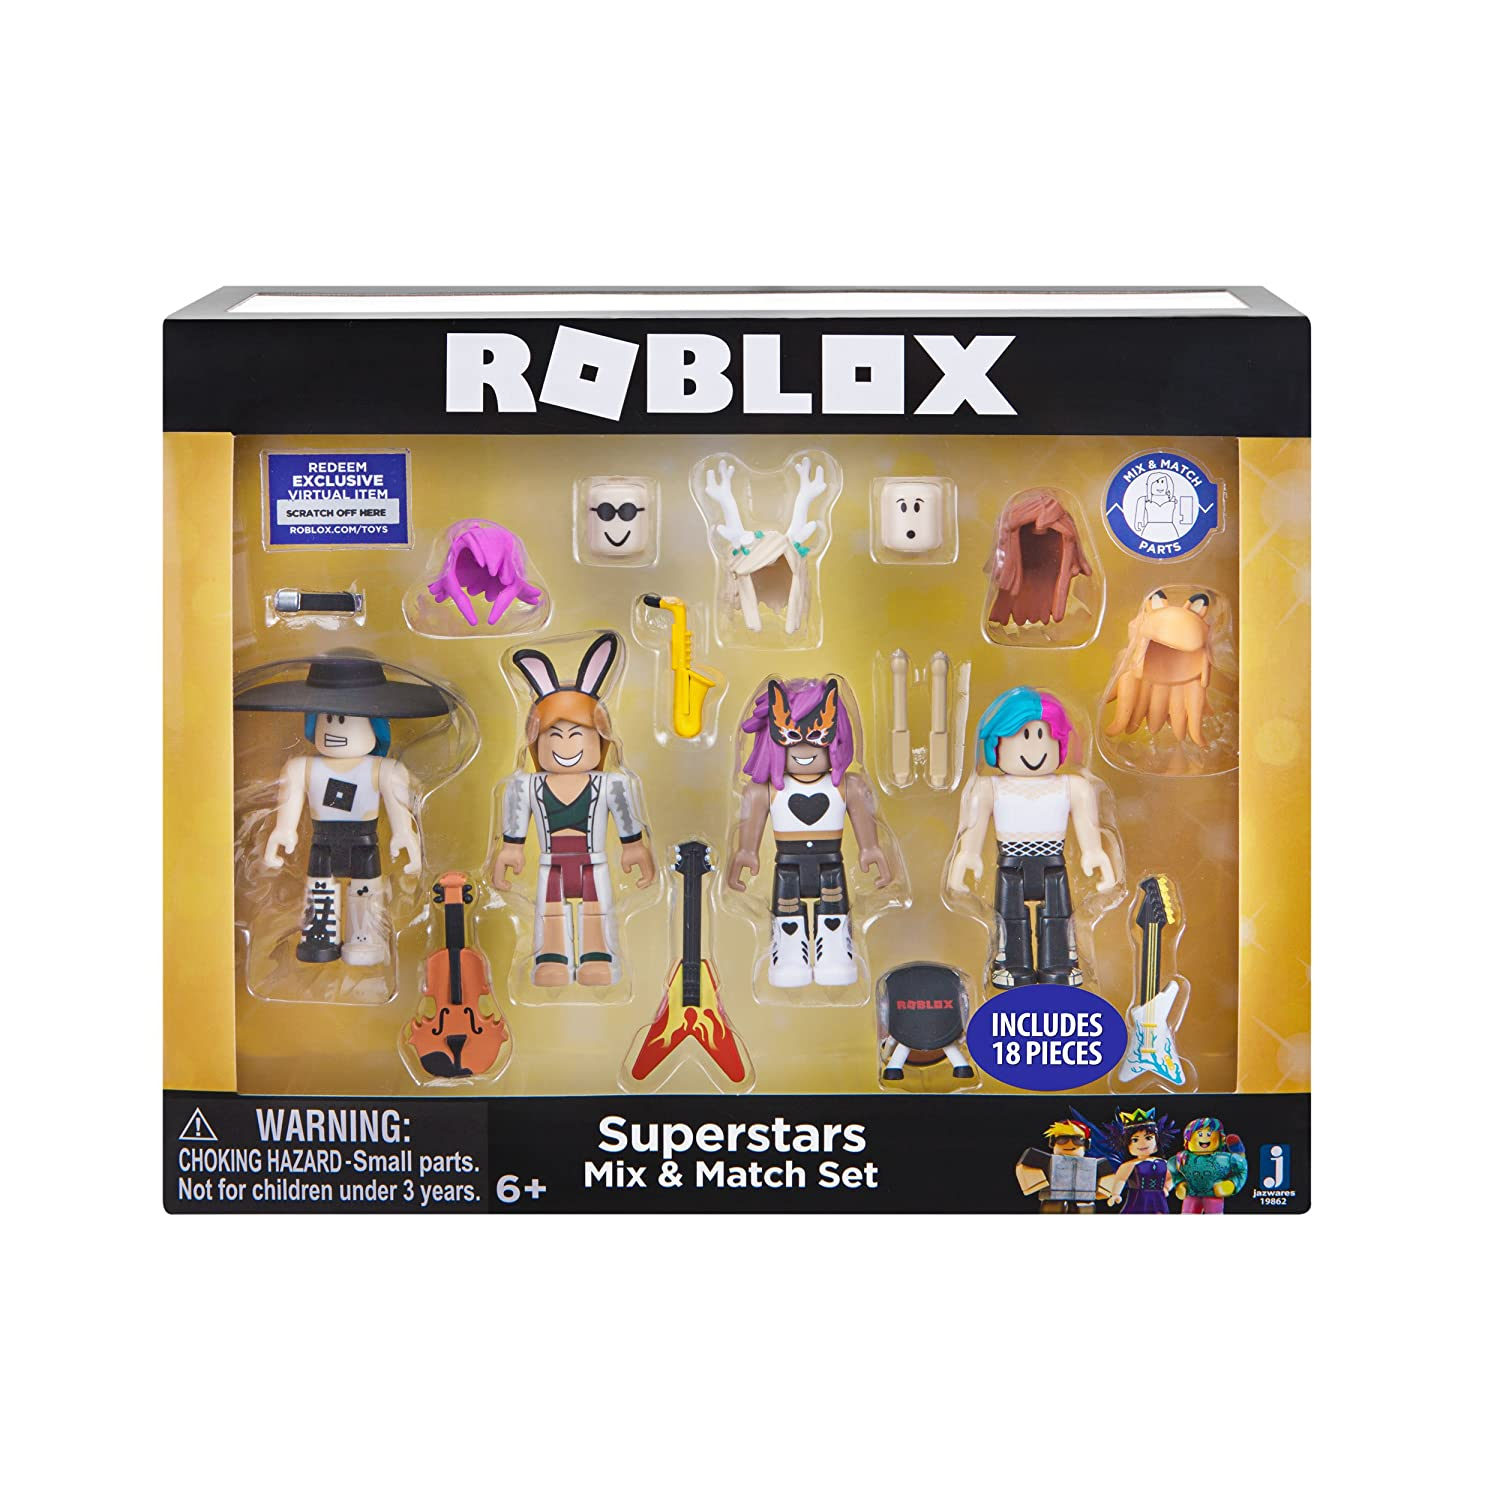 Roblox Celebrity Mix & Match Figure 4 Pack, Superstars